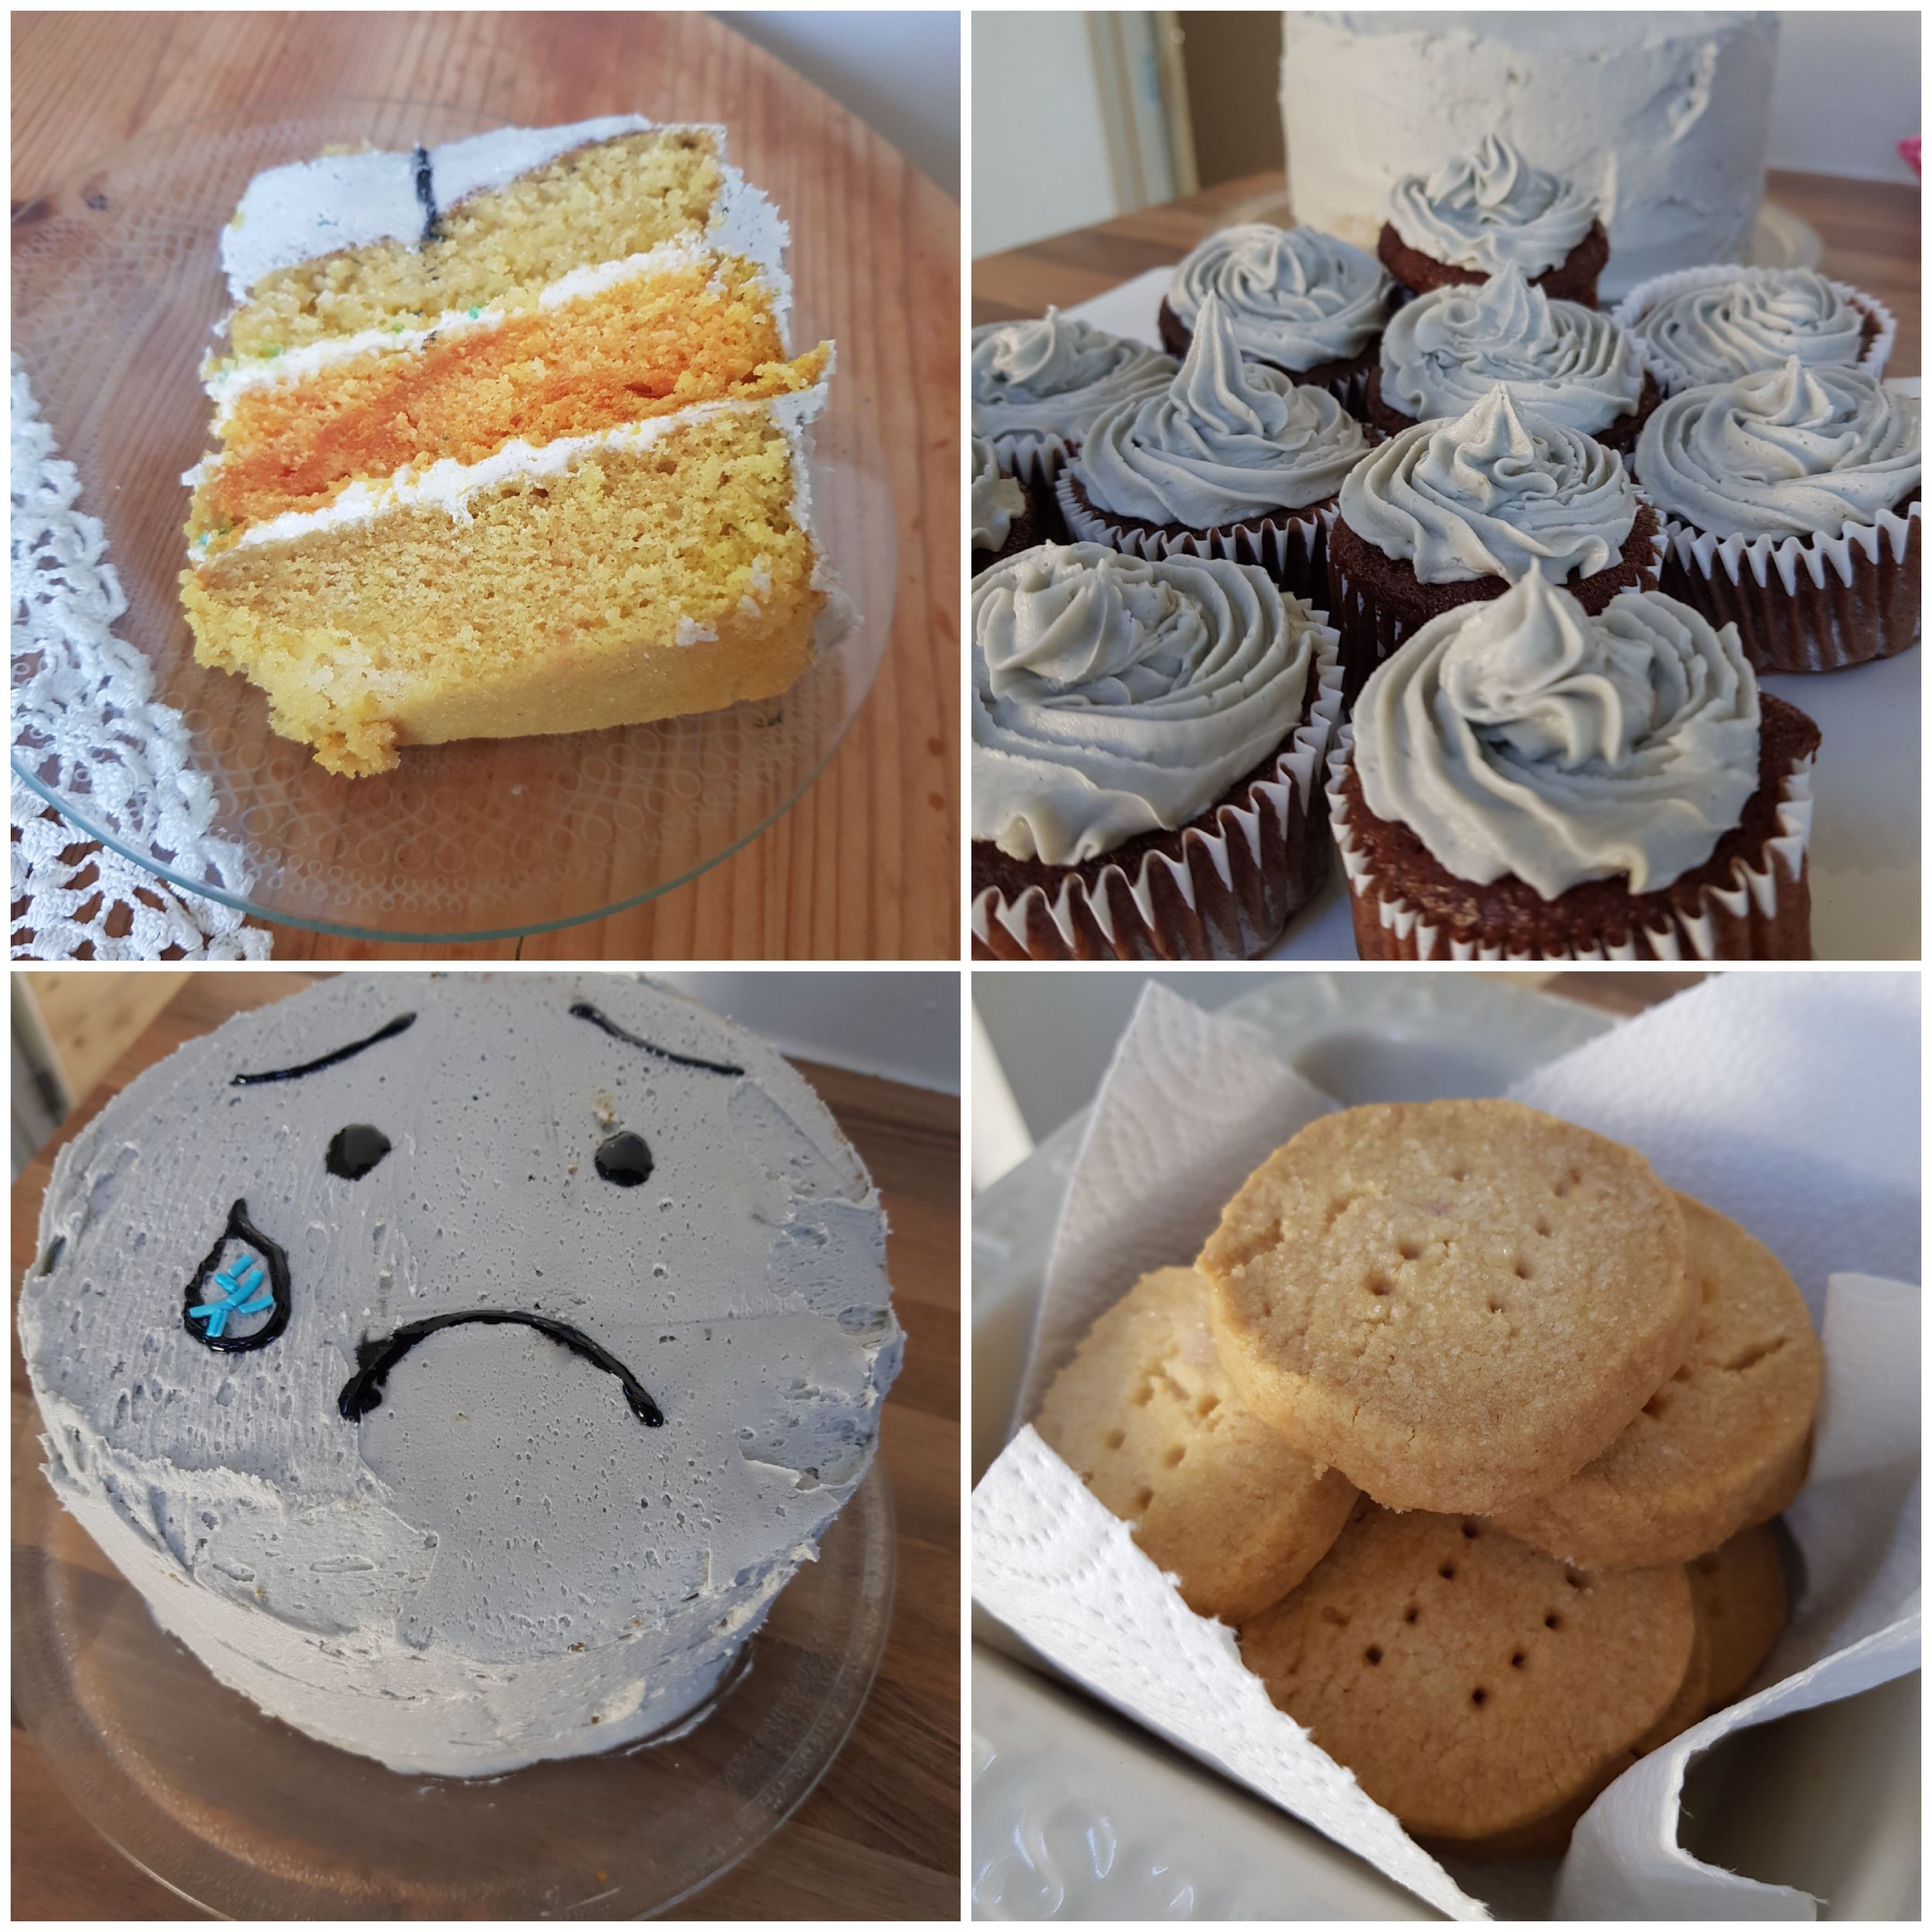 Some baked goods that were sold to raise funds for HEADS TOGETHER